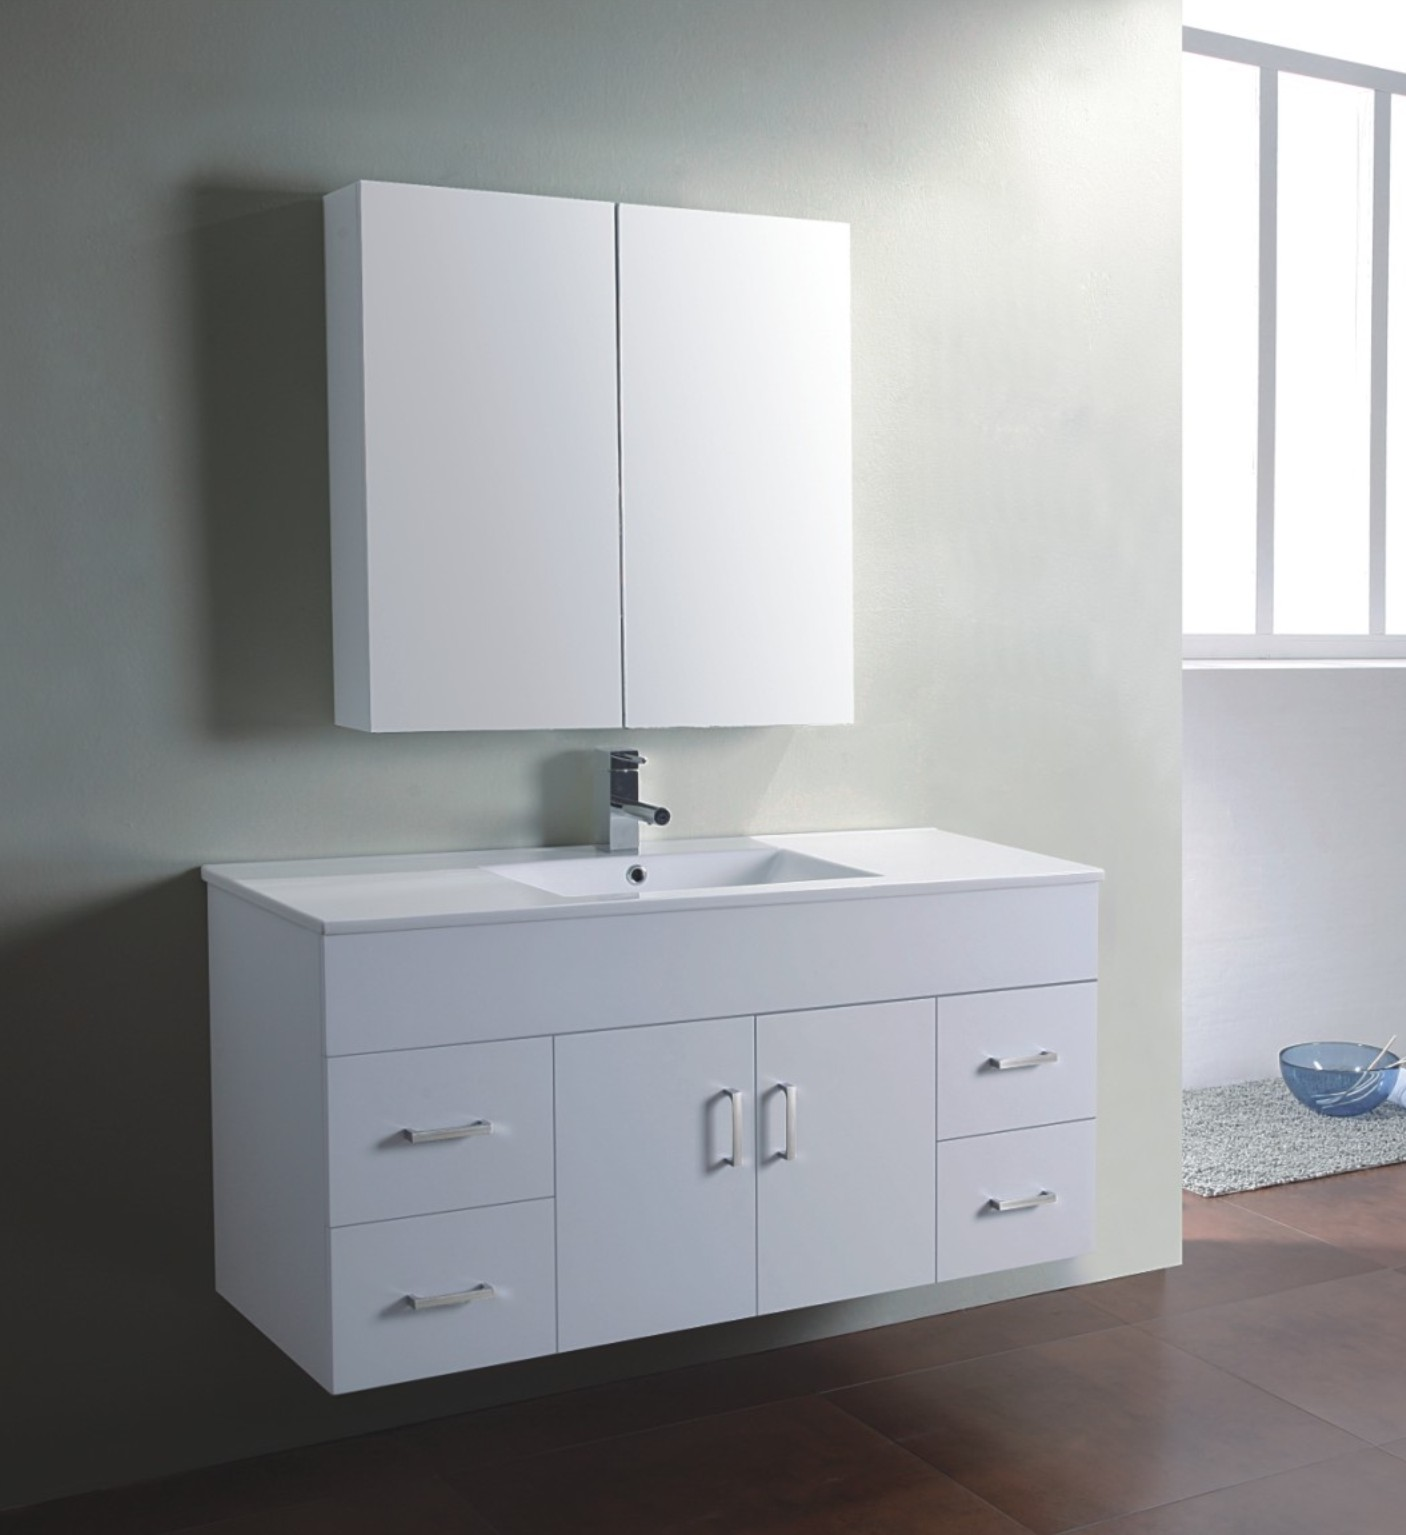 Changing the Bathroom Cabinets for a Completely New Look